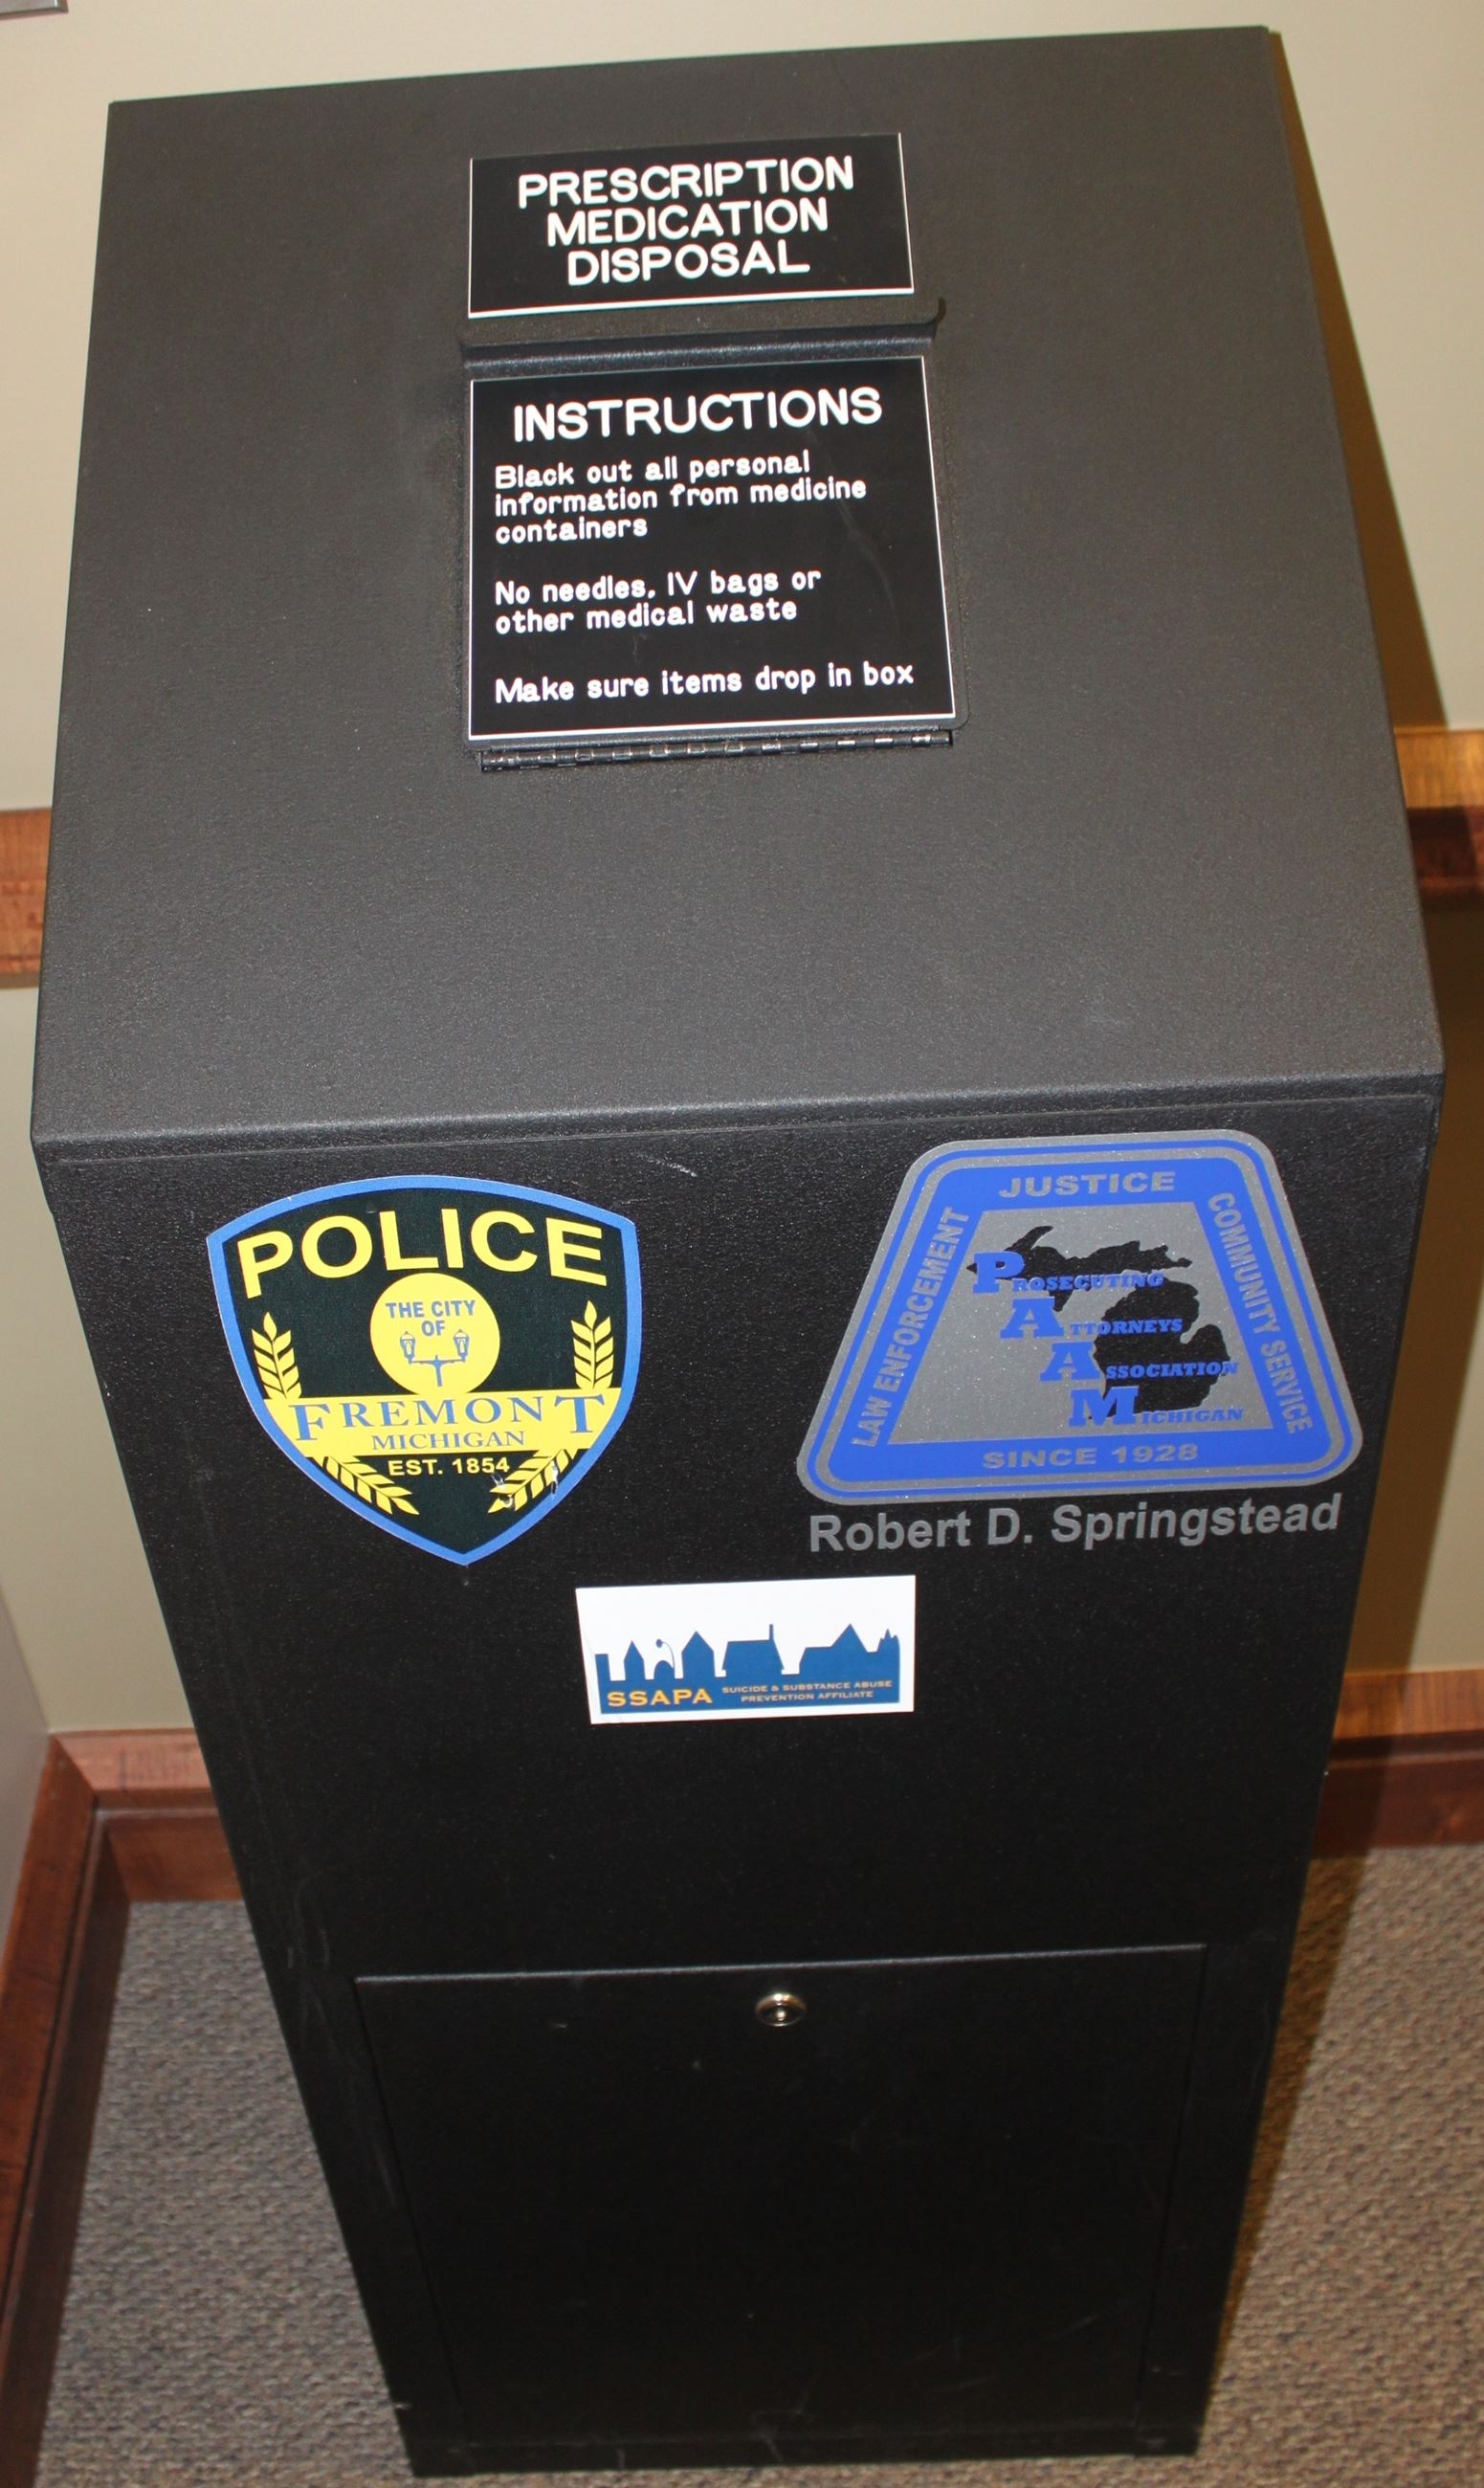 Medication Drop Box for disposal of unused/unwanted drugs